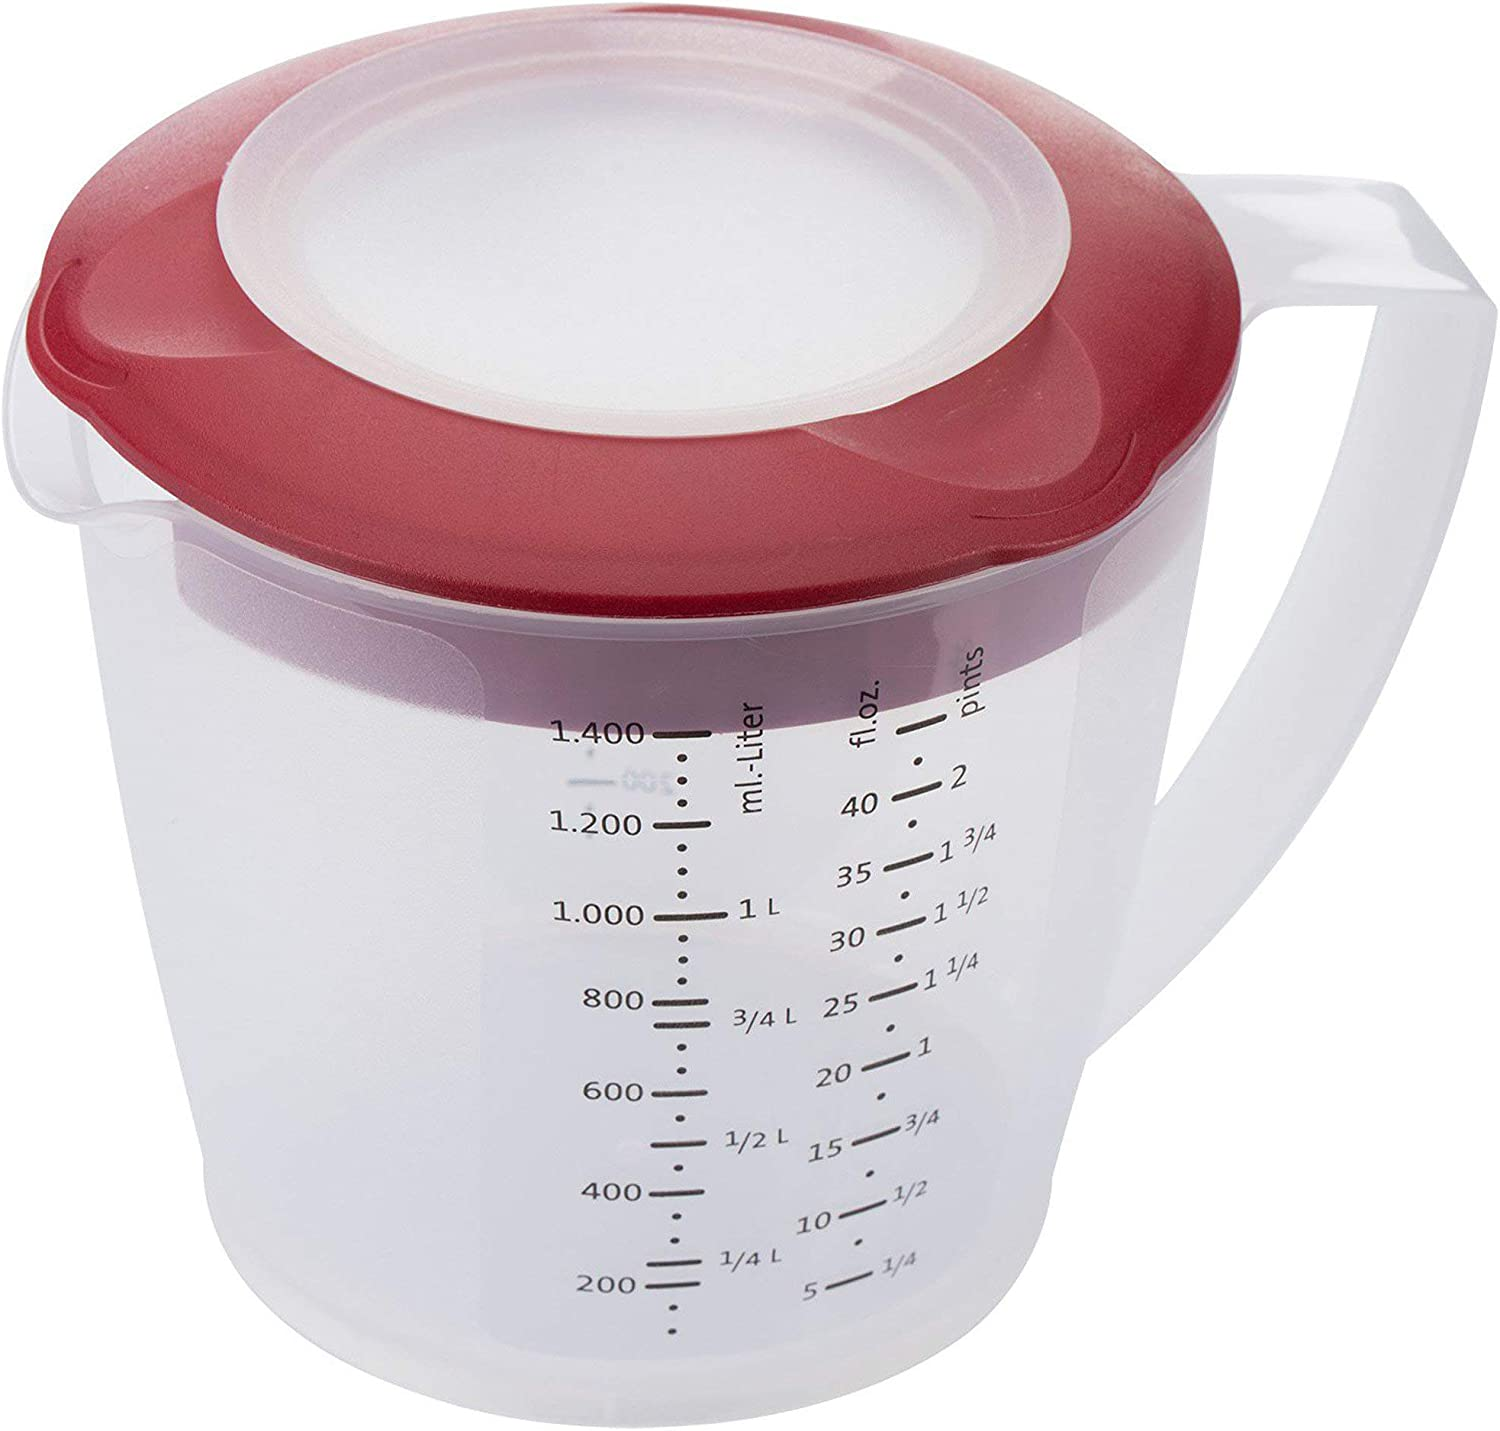 Westmark Multipurpose Measuring Cup and Mixing Pitcher with Splash Guard, 47-Ounce (Red)